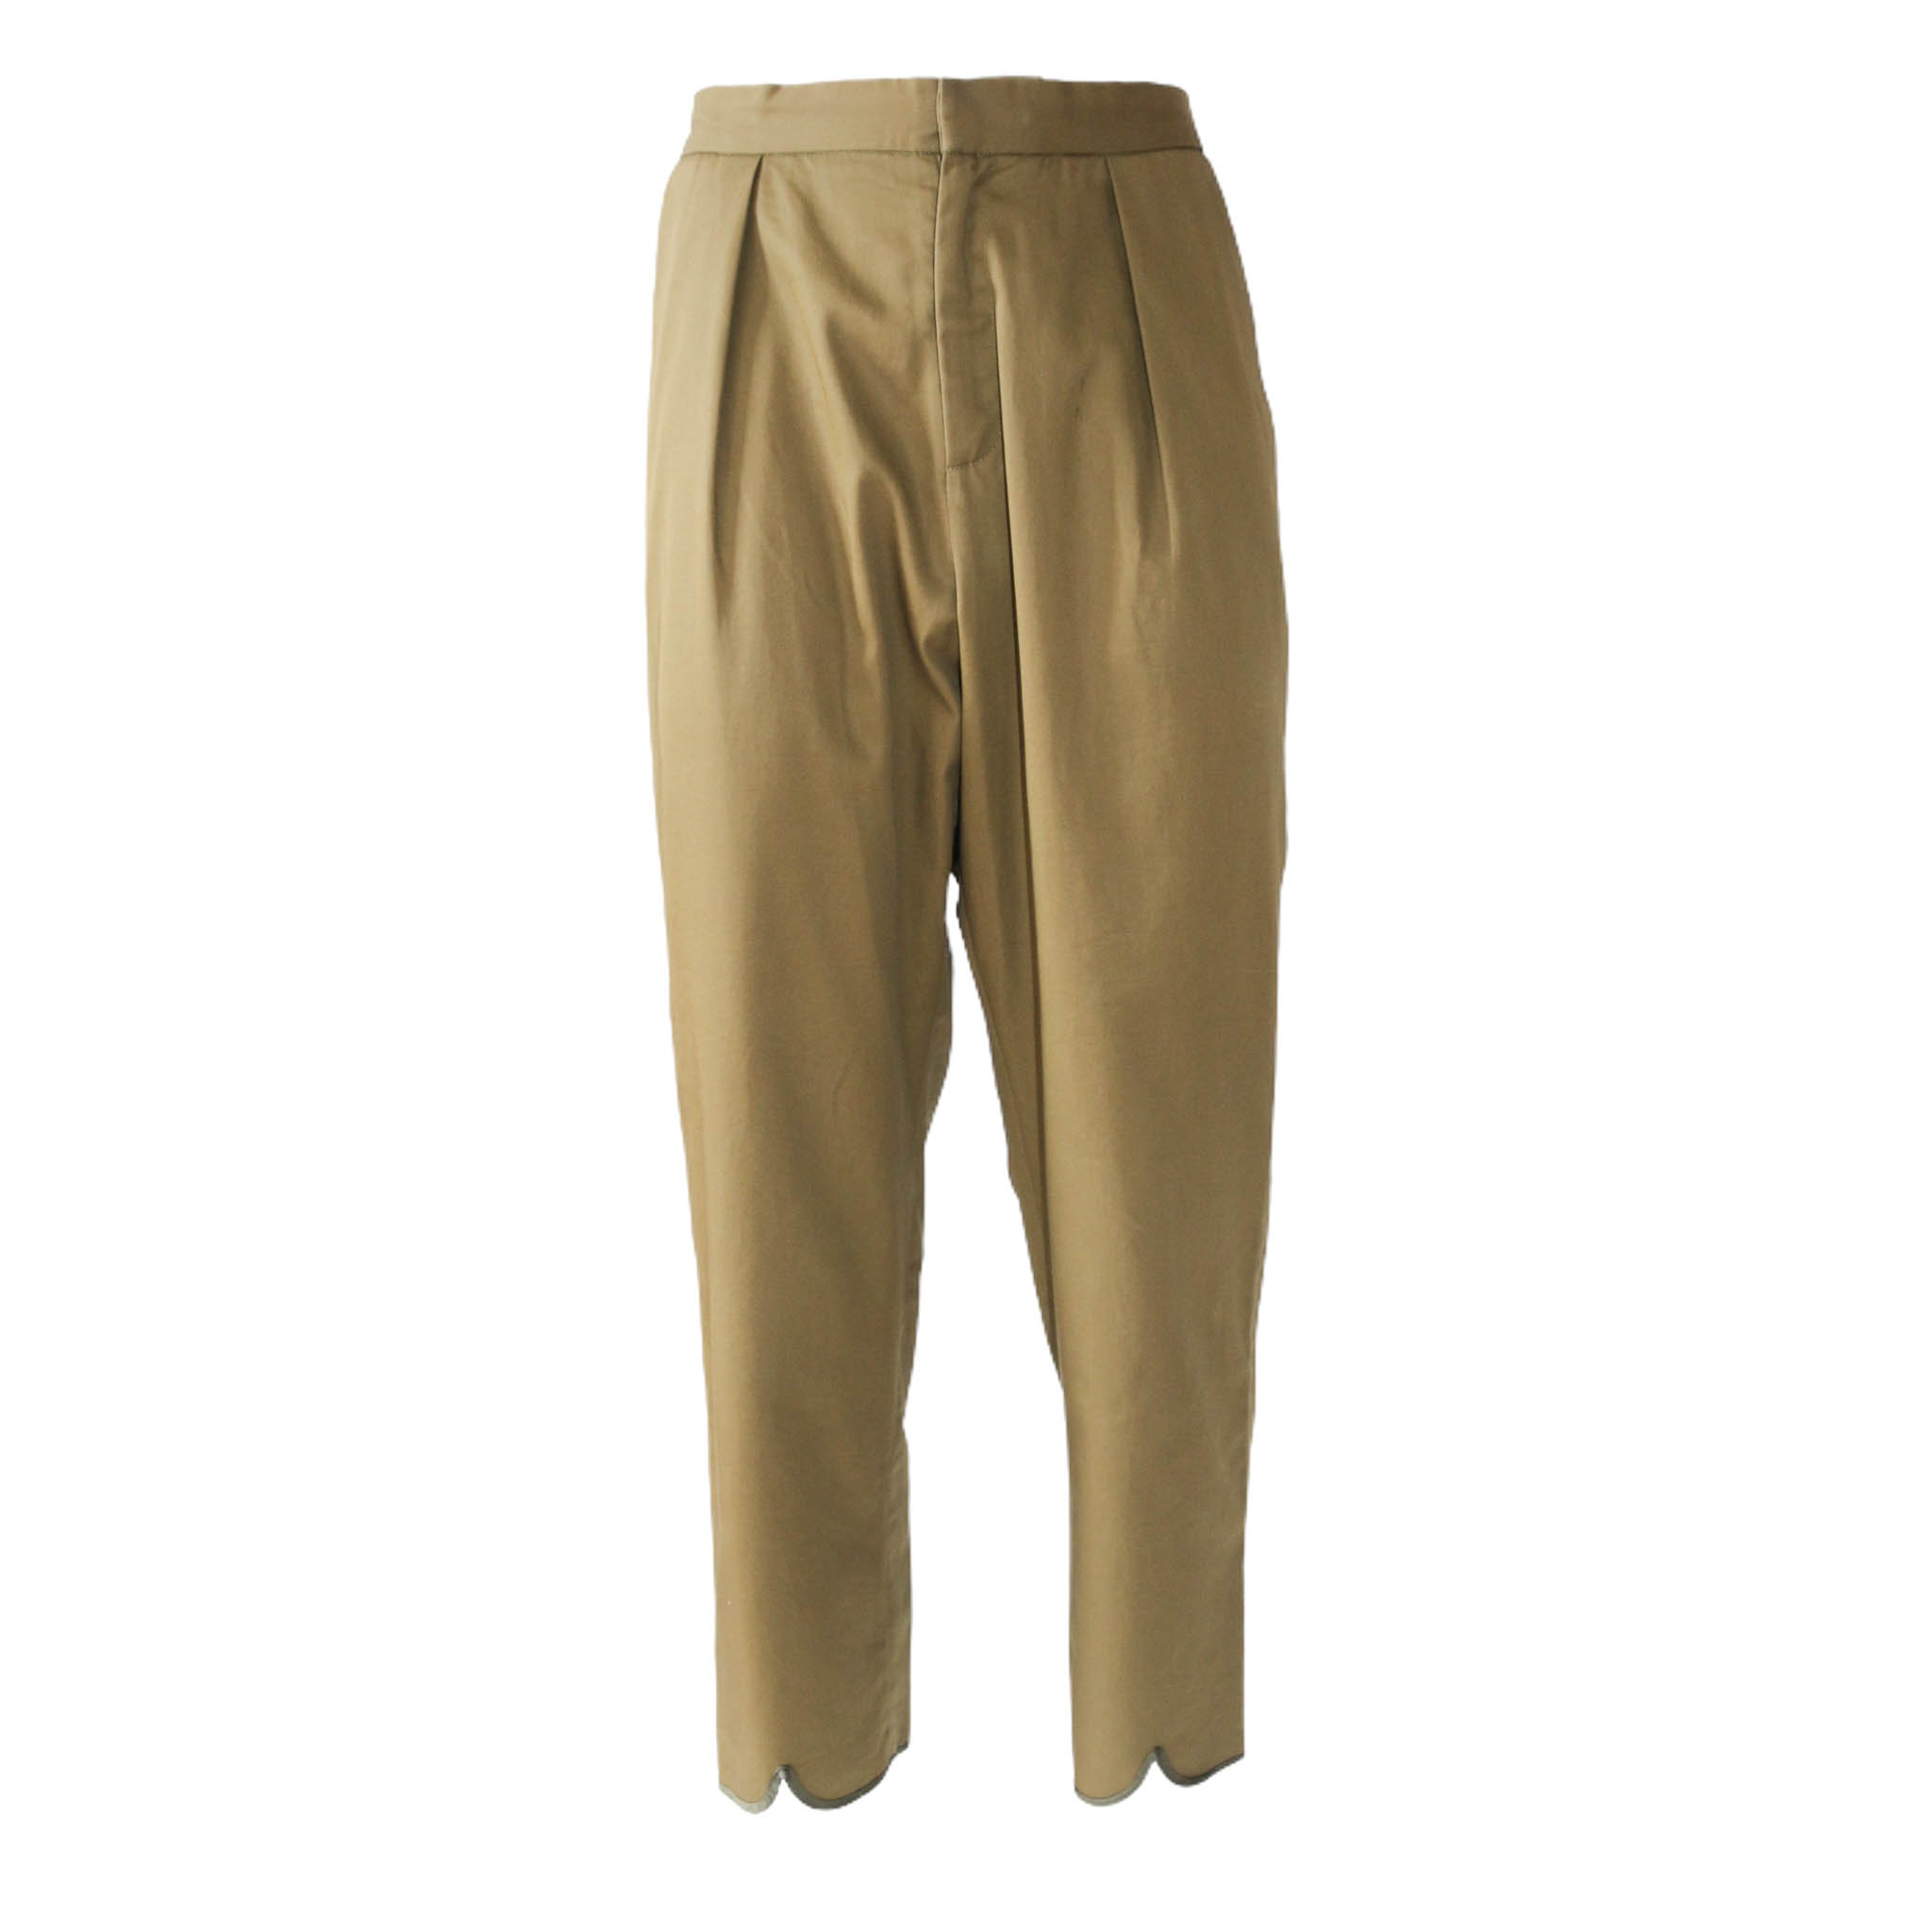 J.W. Anderson Pleated Trousers